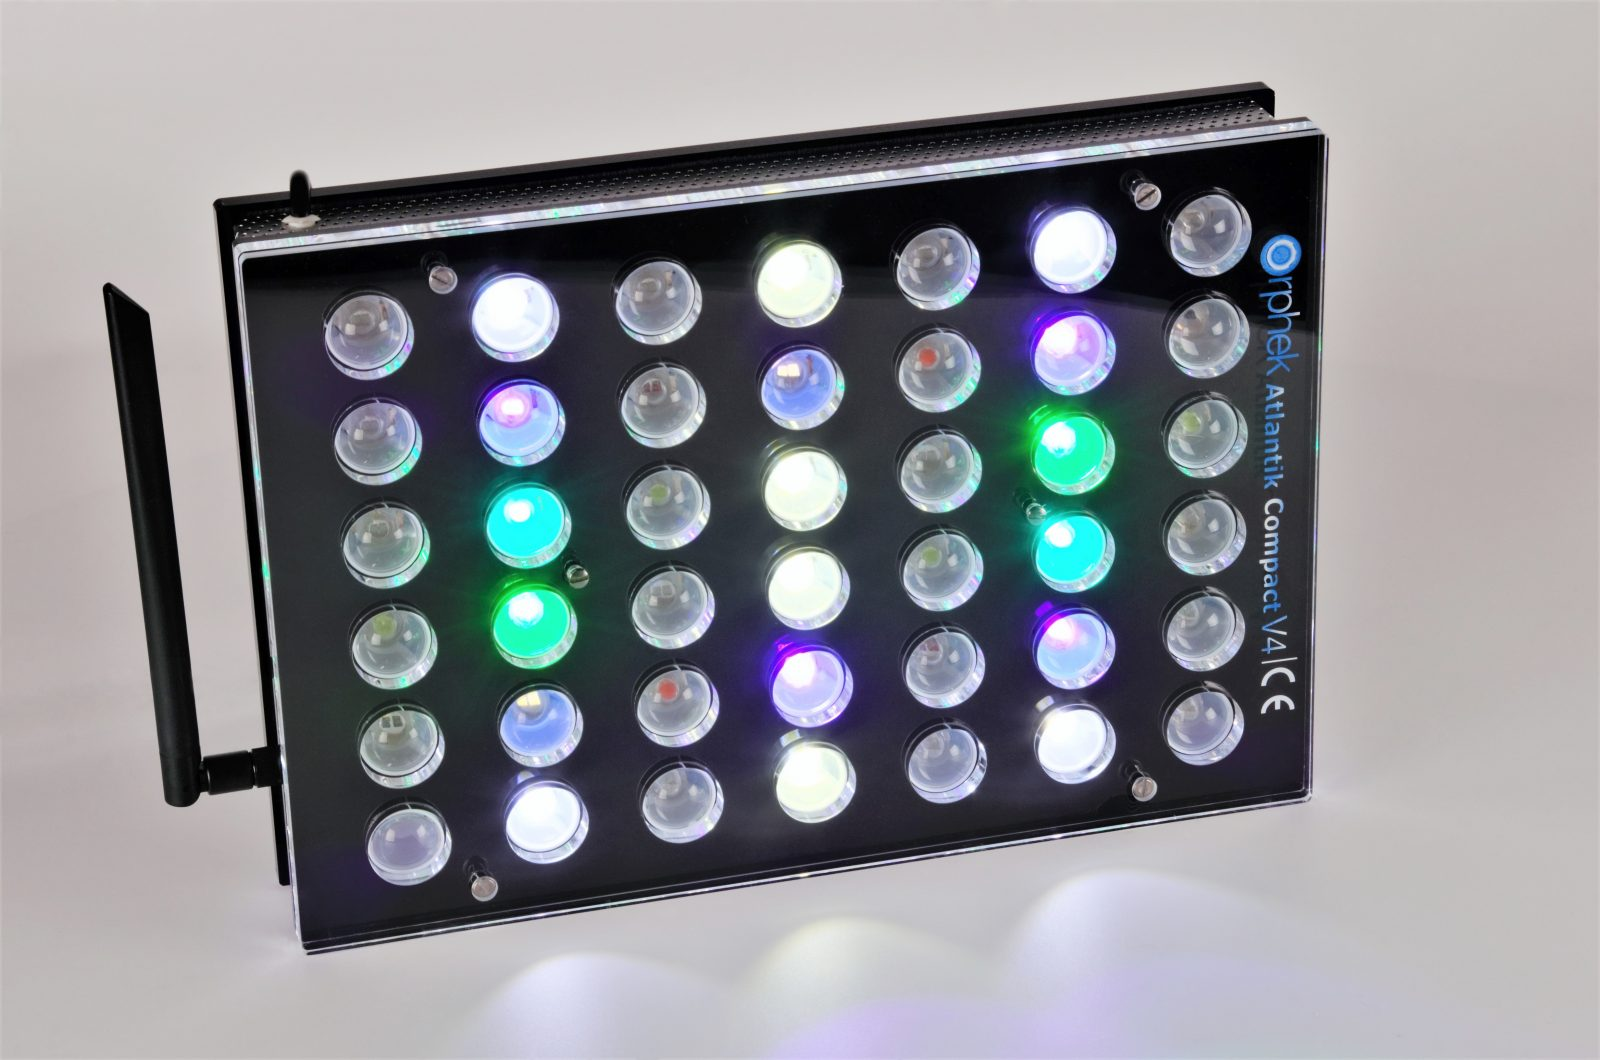 Orphek-Aquarium-LED-Lighting-Atlantik -Compact-V4-lys -kanalen 1 + 3